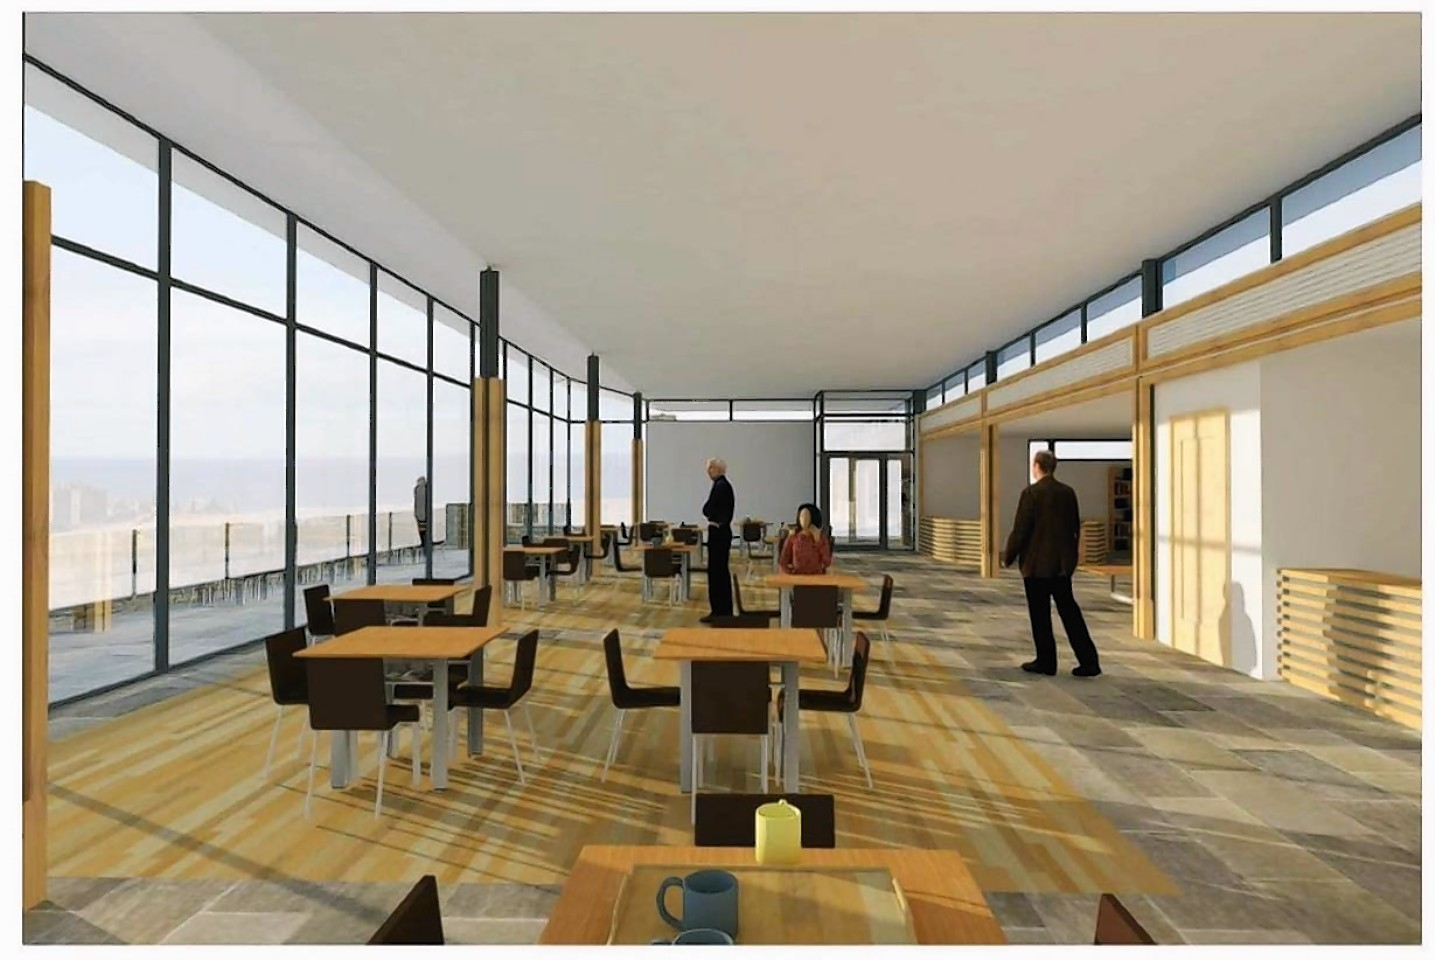 The proposed plans for Dunnottar Castle visitor's centre